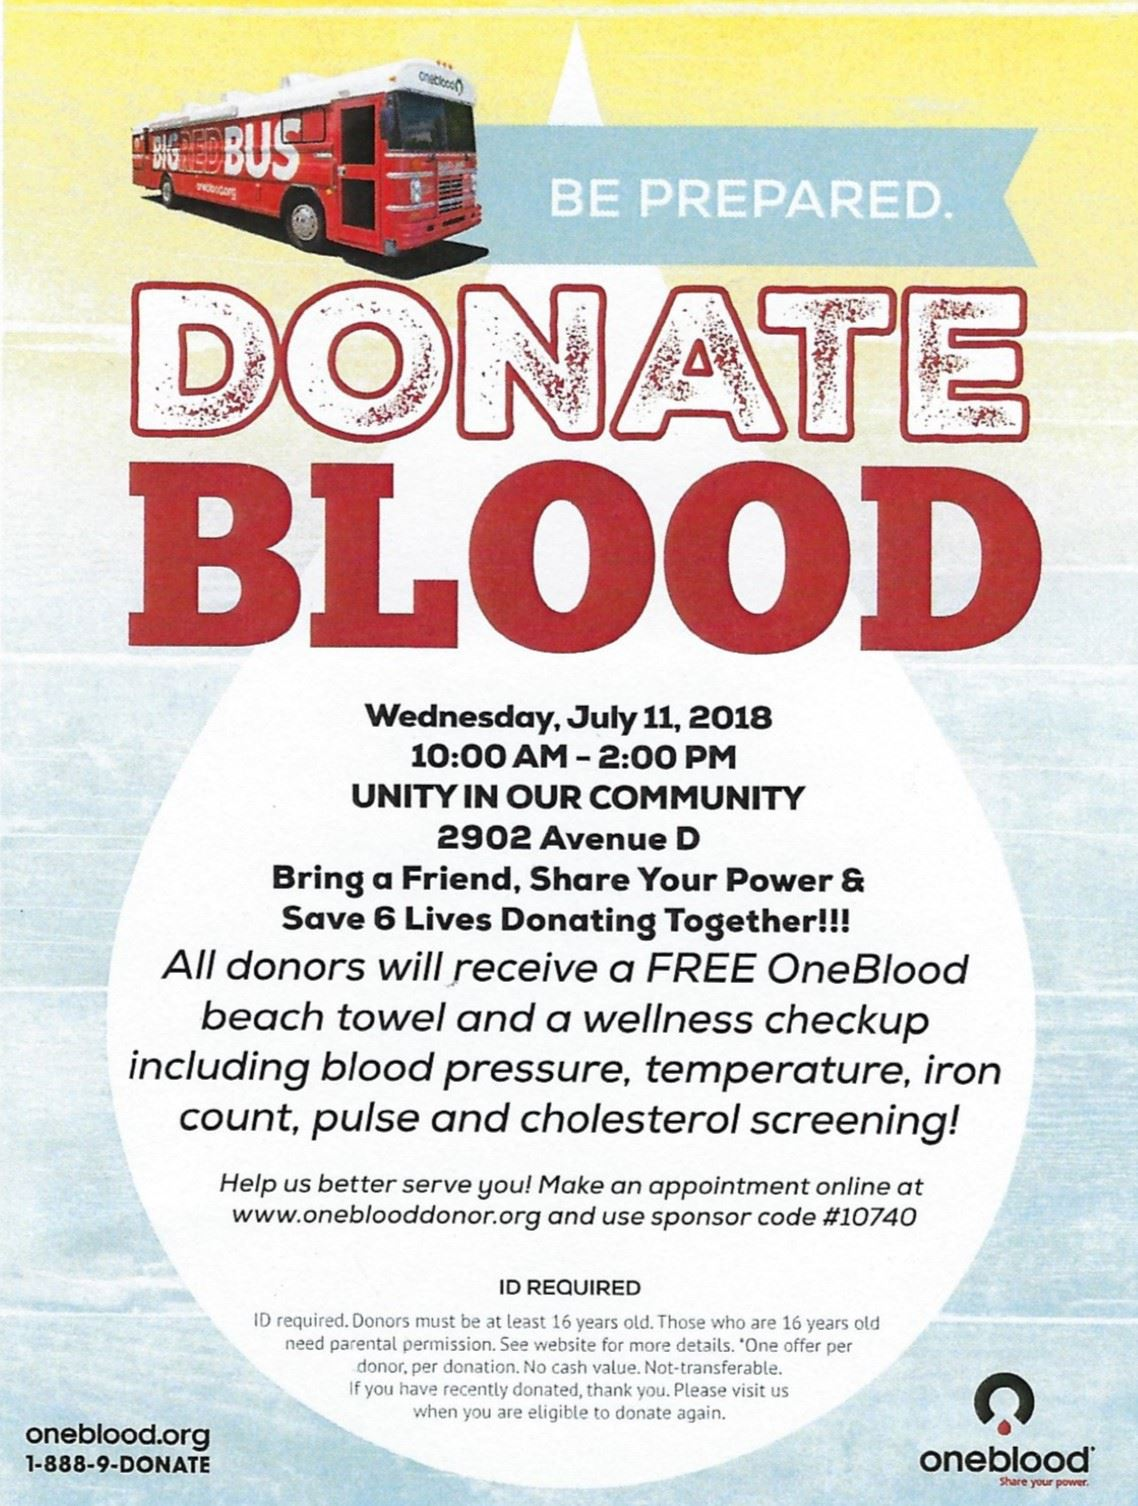 DonateBlood unity in Community